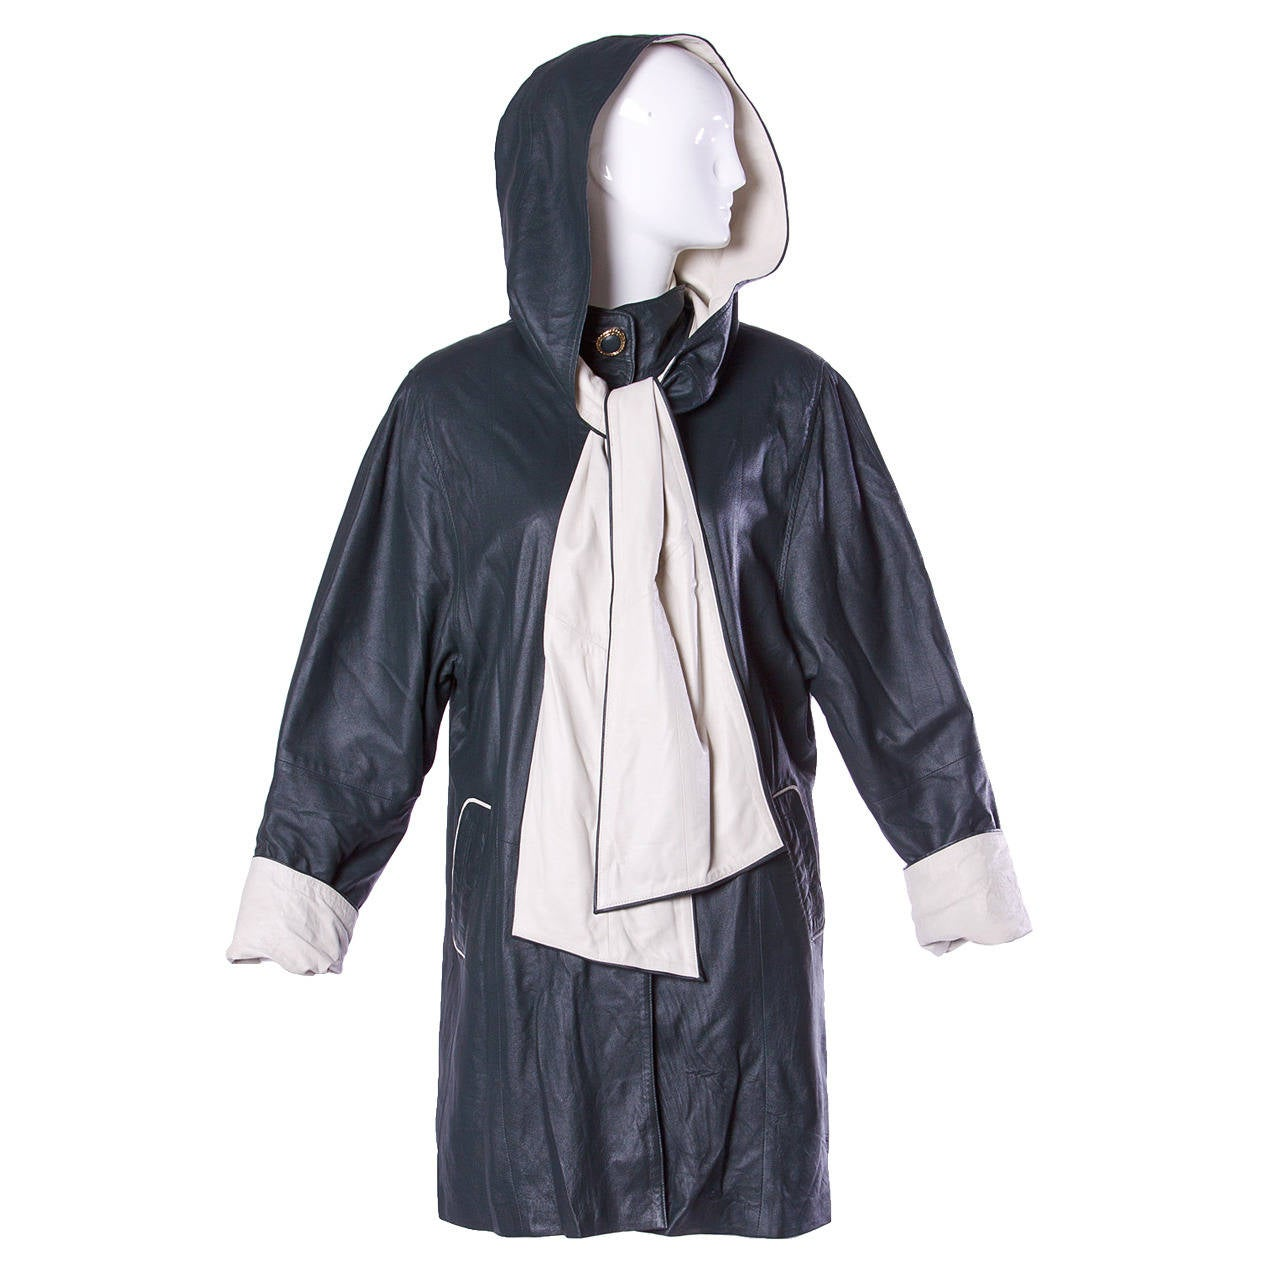 Escada by Margaretha Ley Vintage Black + White Leather Hooded Coat For Sale